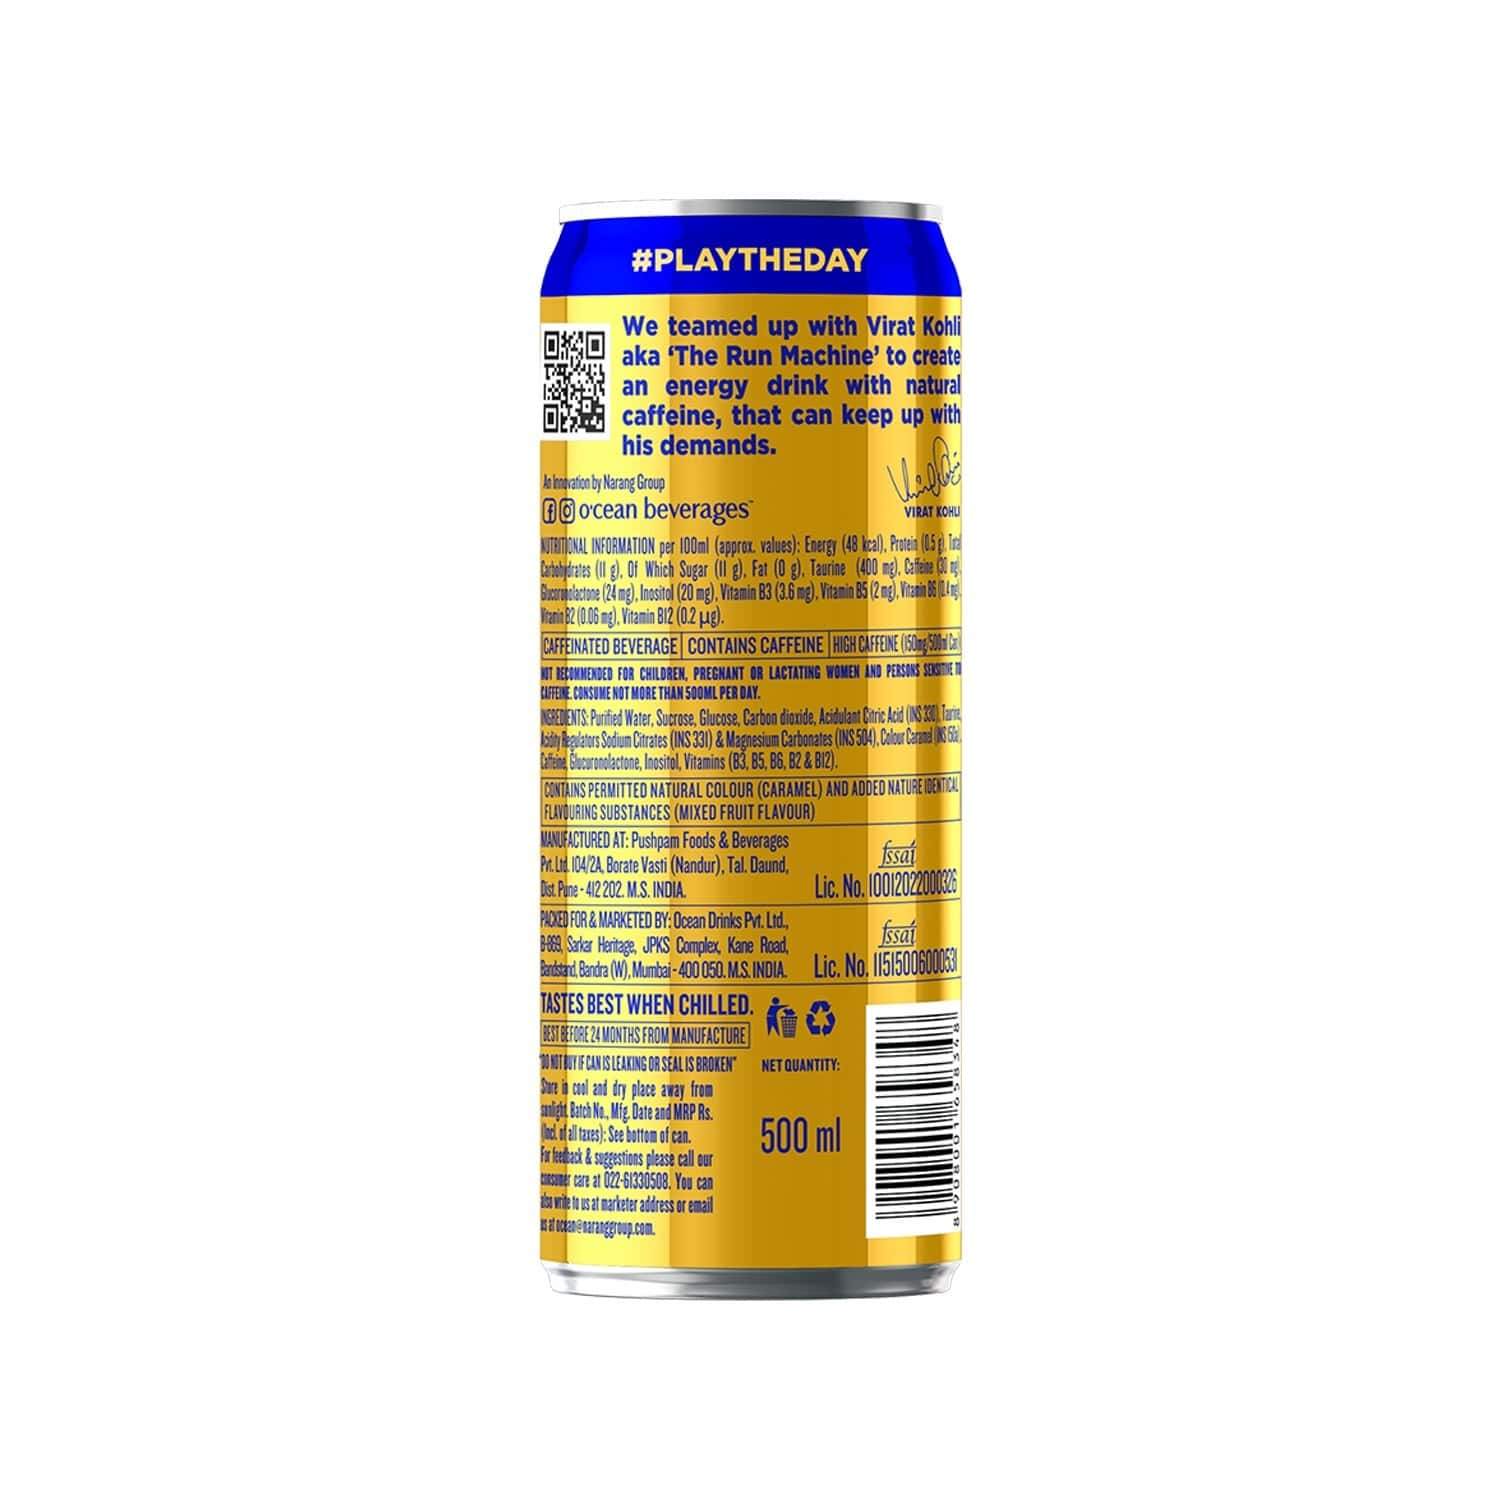 O'cean Natural Energy Drink With Natural Energy From Plant Based Caffeine & No Artificial Sweeteners, 500 Ml